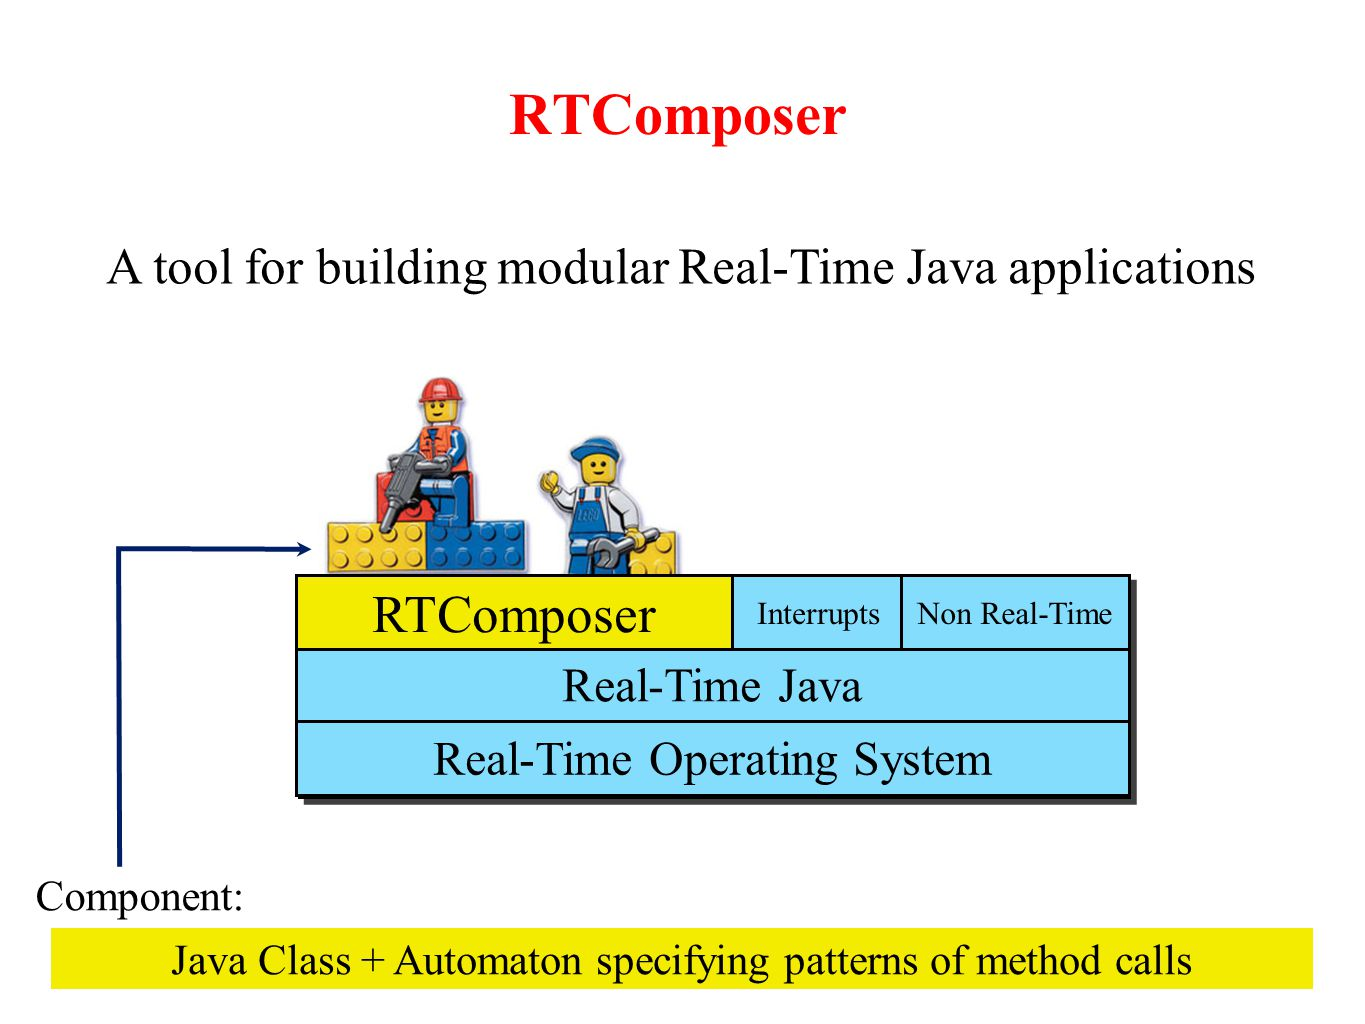 RTComposer A tool for building modular Real-Time Java applications Java Class + Automaton specifying patterns of method calls Component: Real-Time Operating System Real-Time Java RTComposer InterruptsNon Real-Time